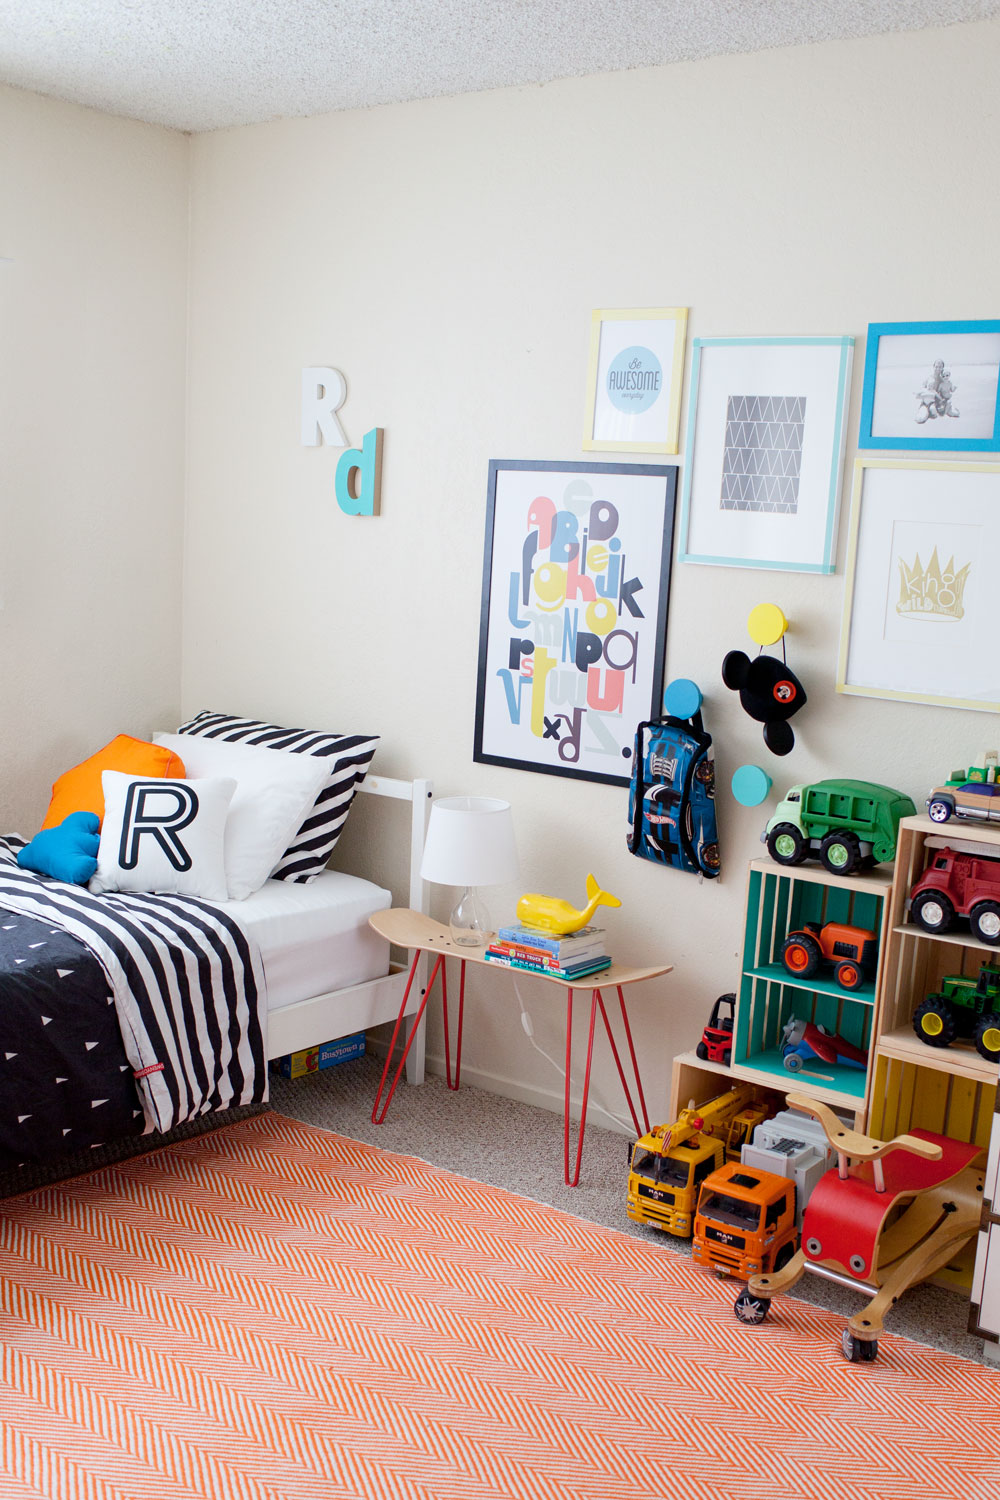 Tell Love and Chocolate- Kids room redo